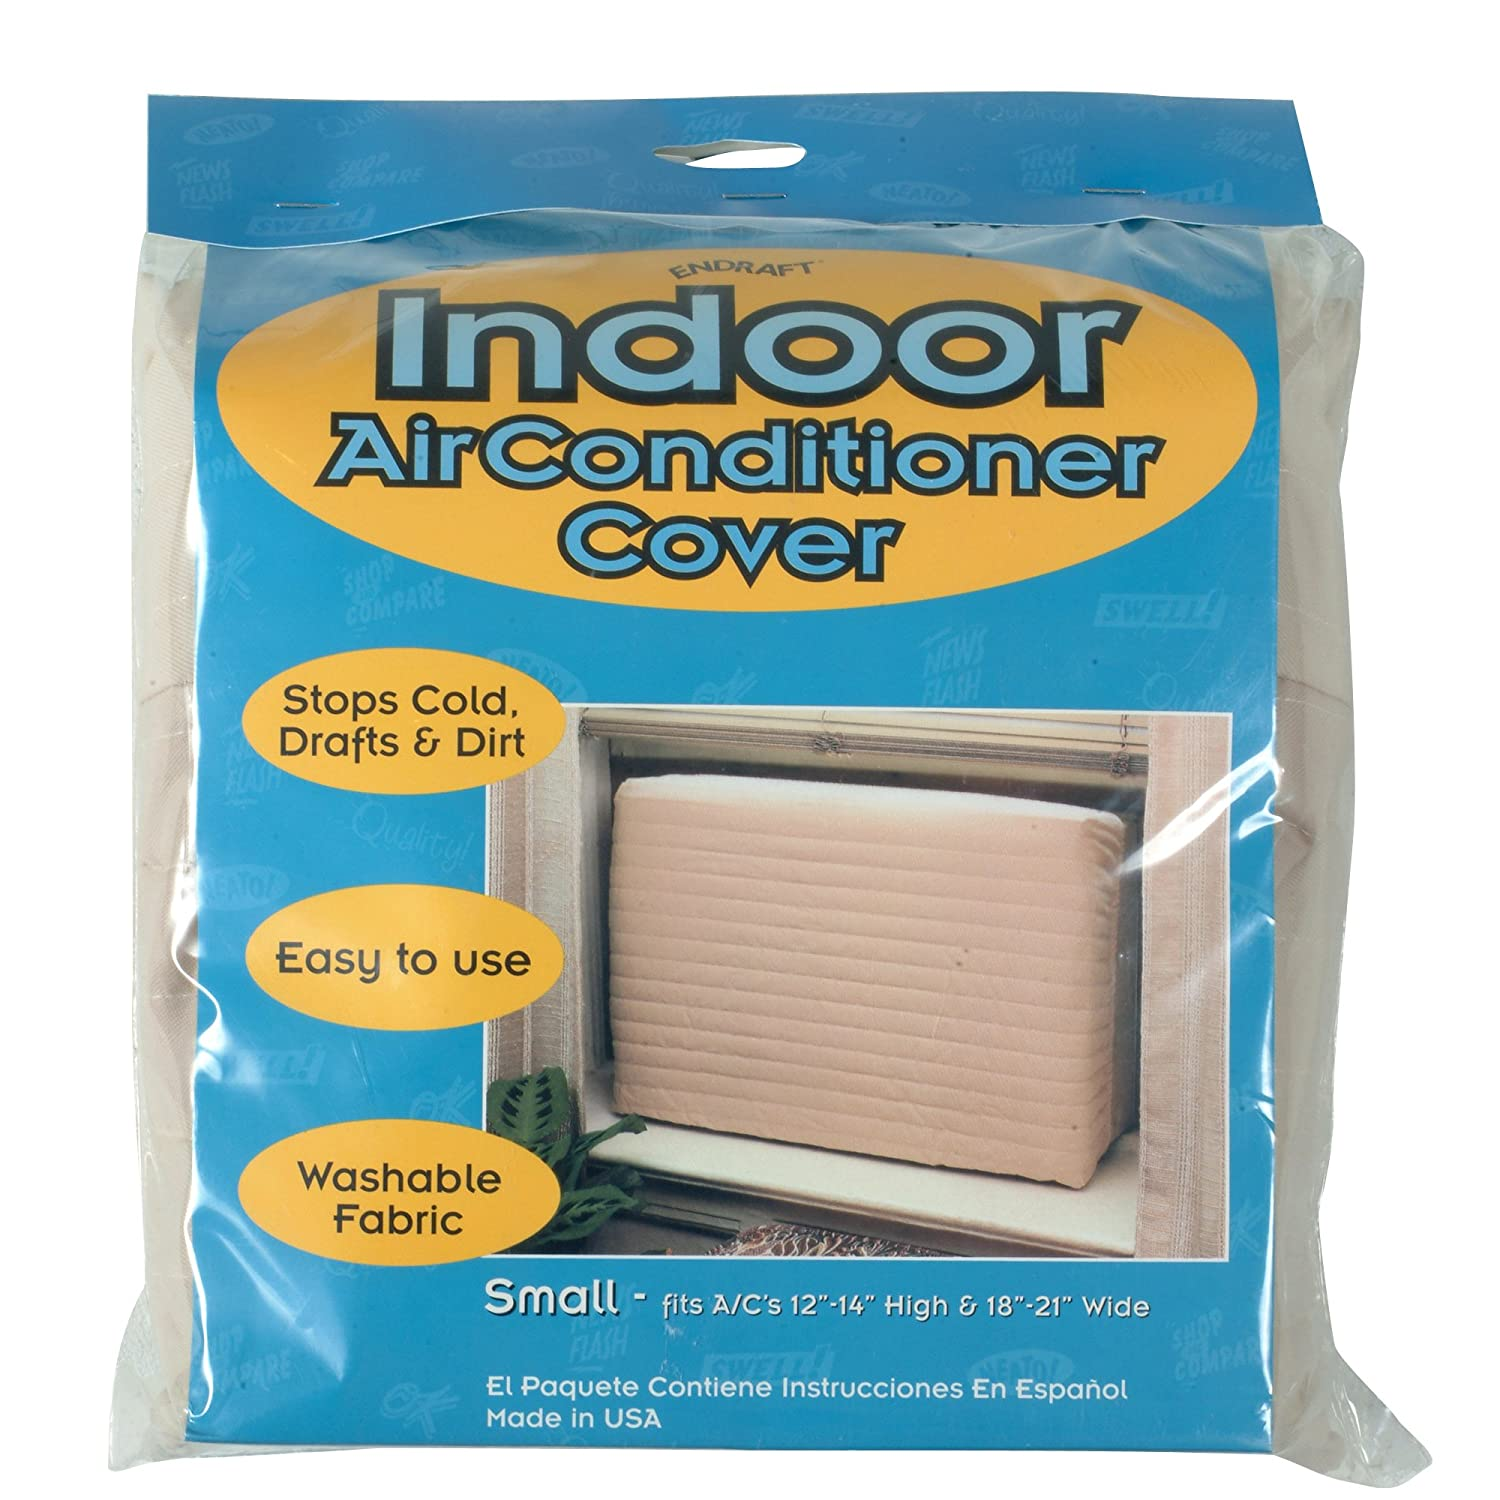 Whirlpool 4392939 Air Conditioner Indoor Cover. Small